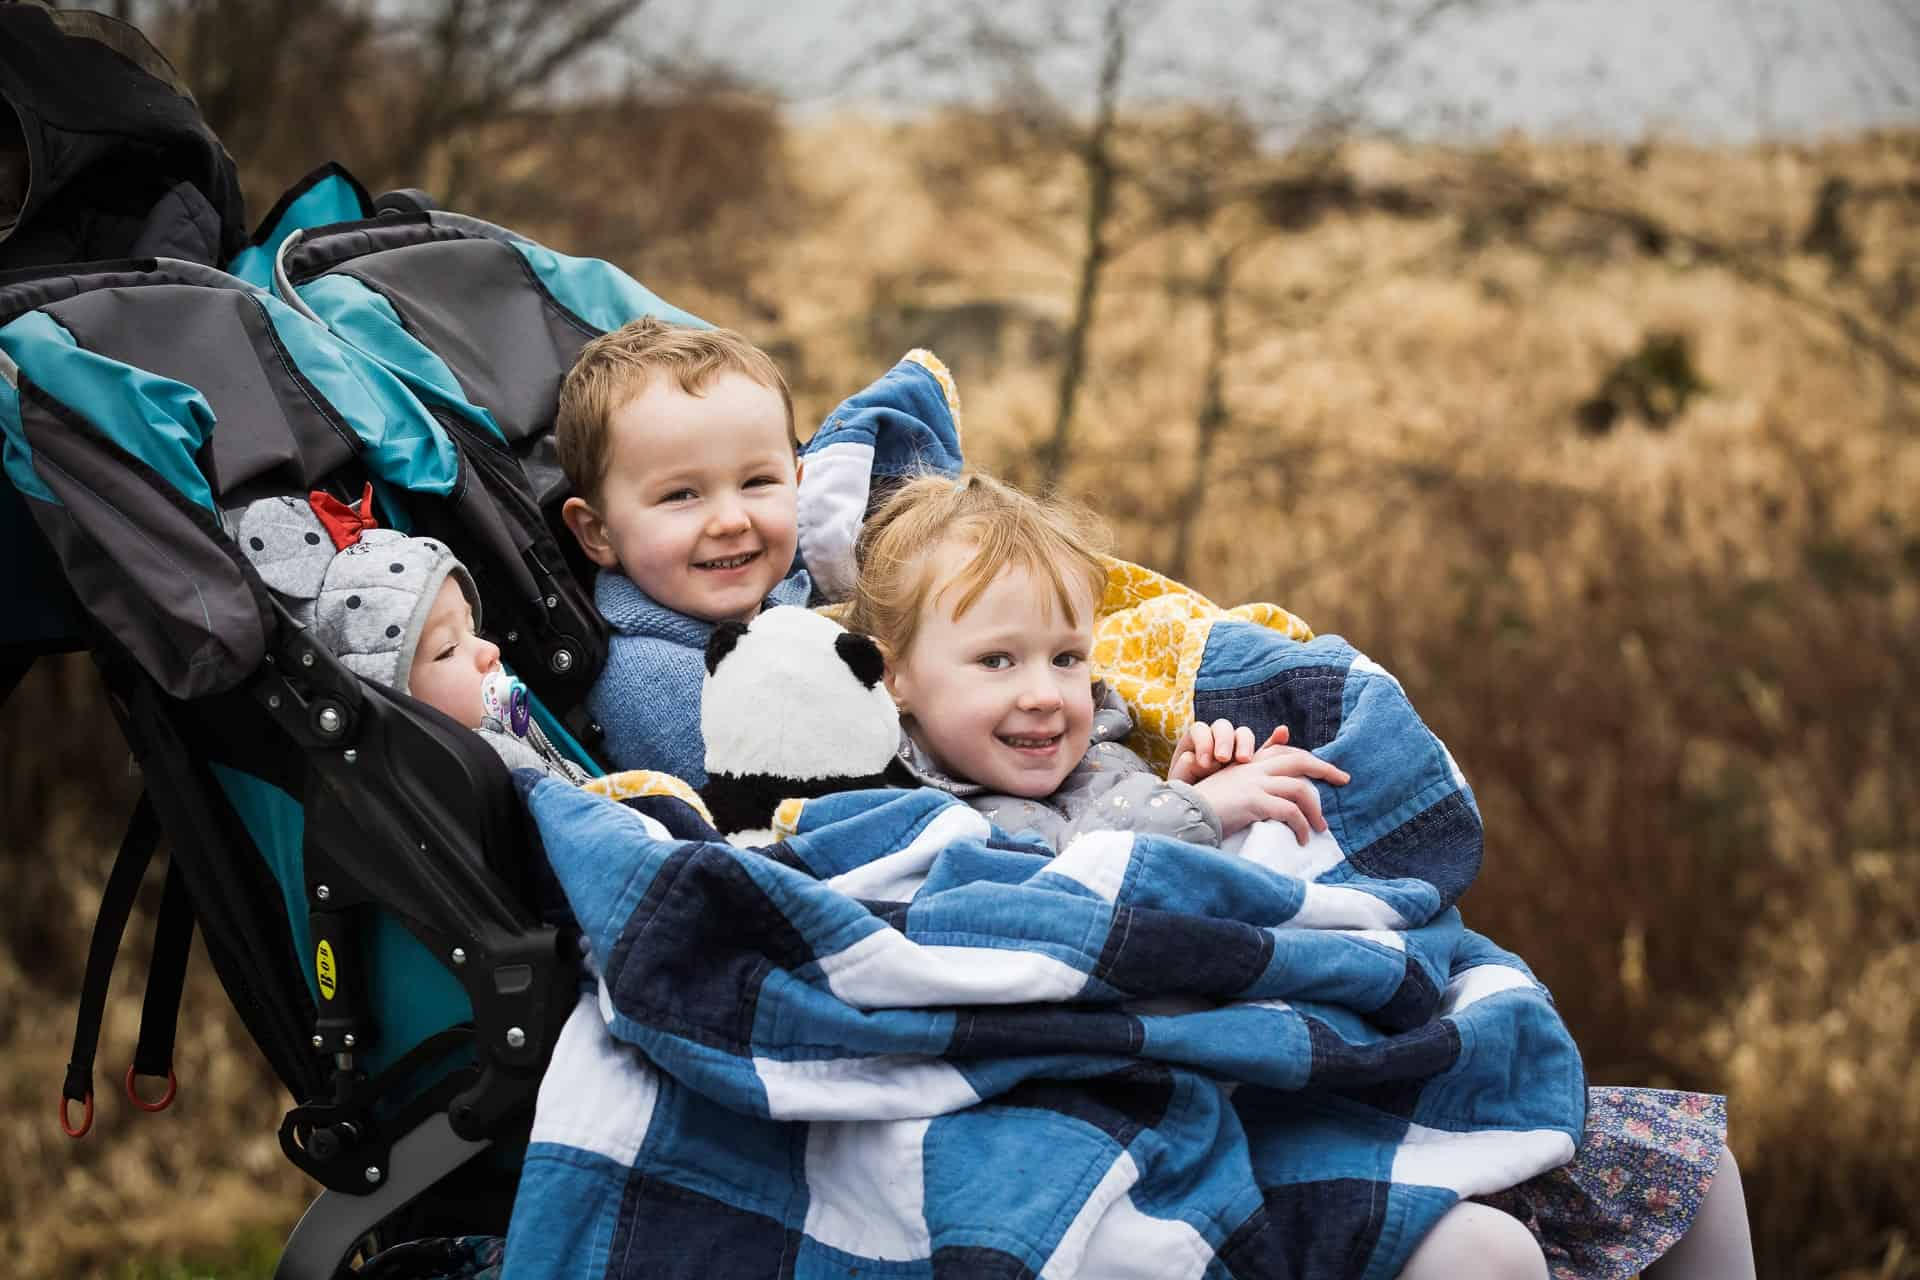 three siblings piled on top of each other in a stroller under a blanket